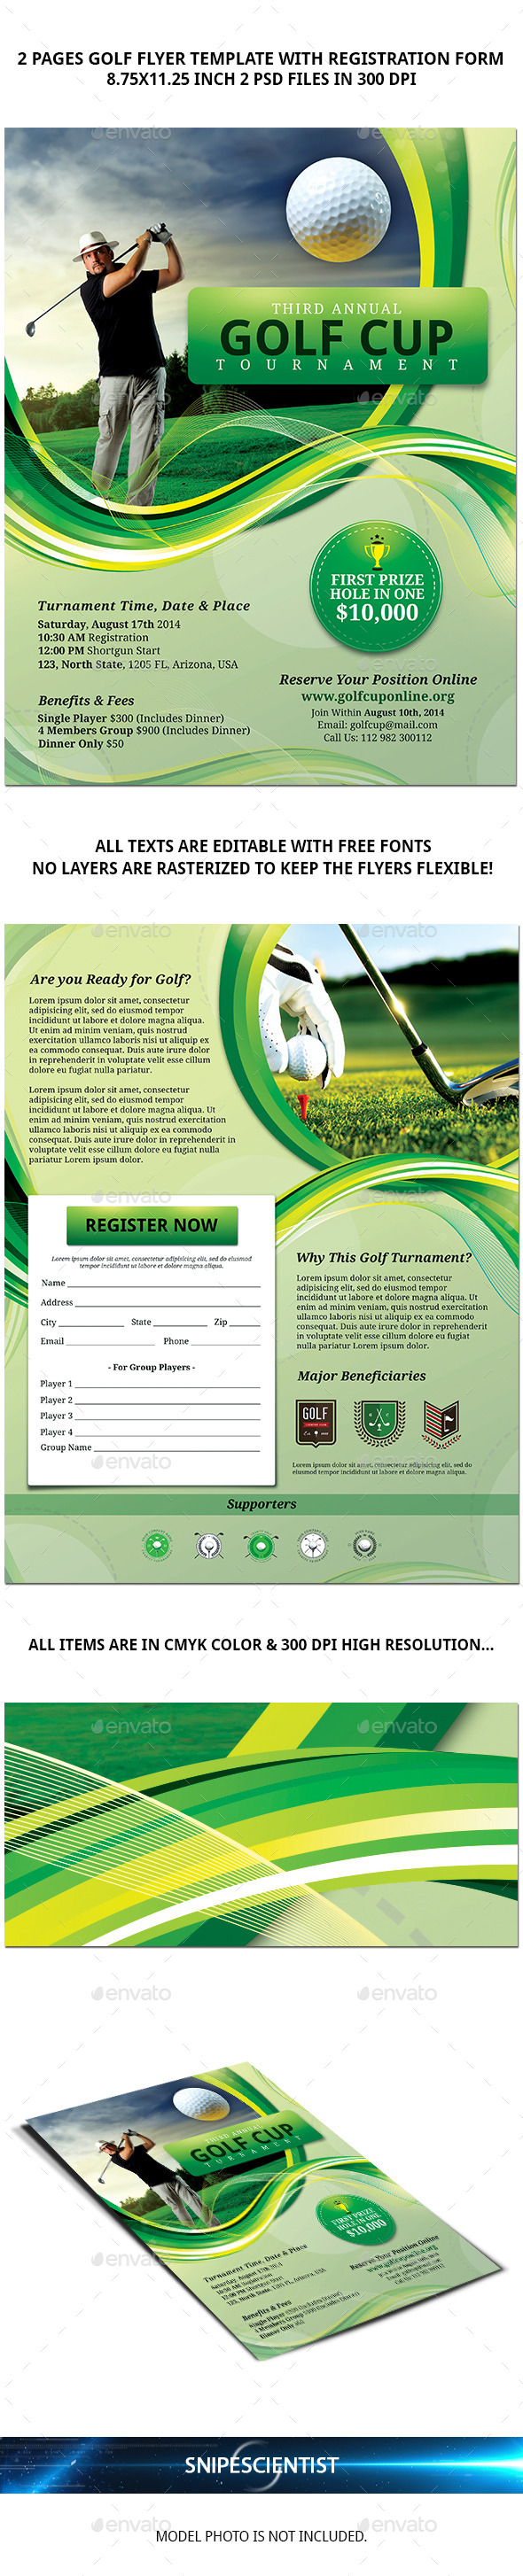 This gives sponsors and teams a. Golf Flyer Template With Registration Form Flyer Templates